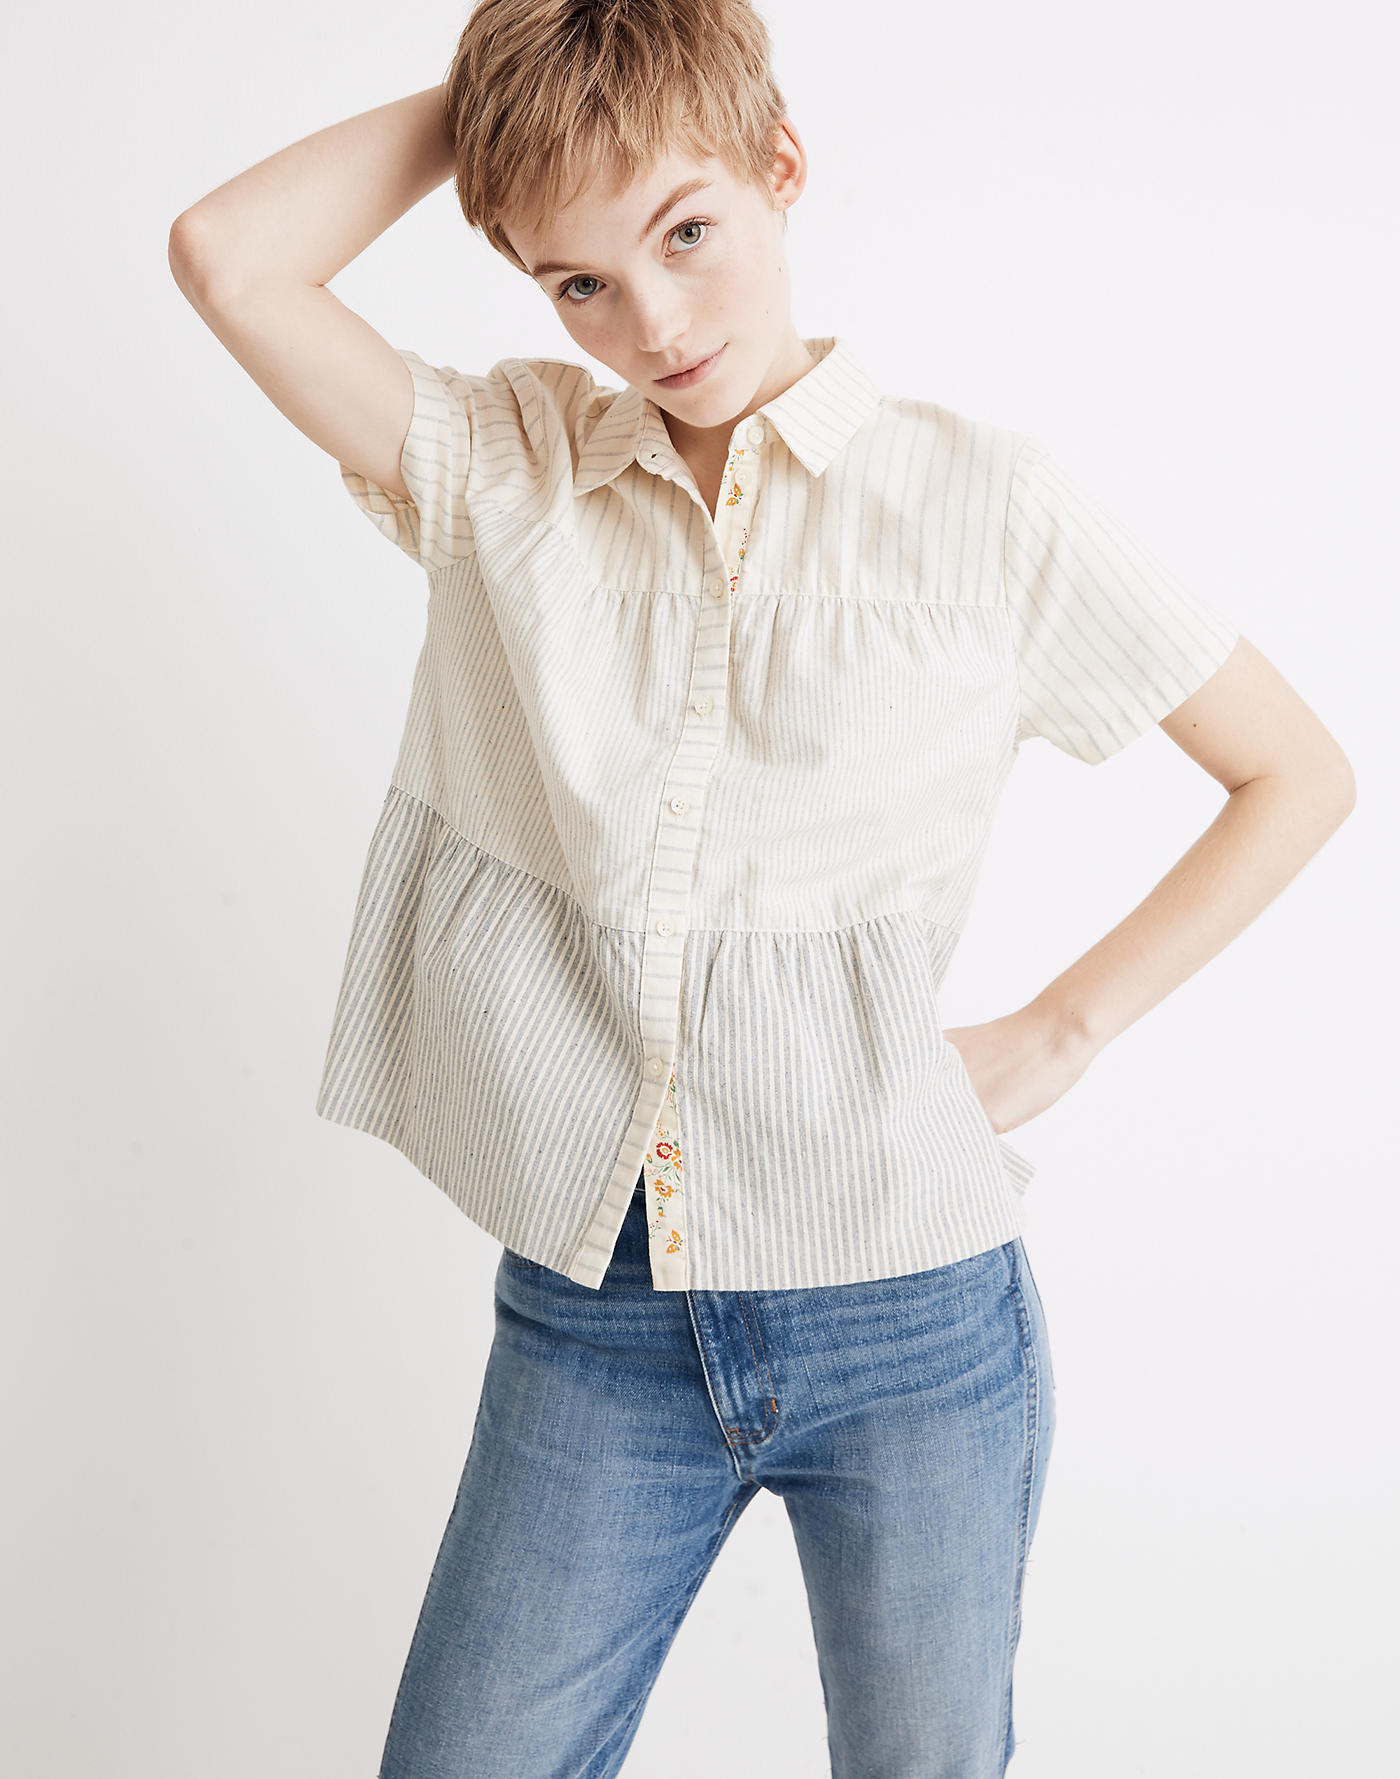 Madewell x The New Denim Project